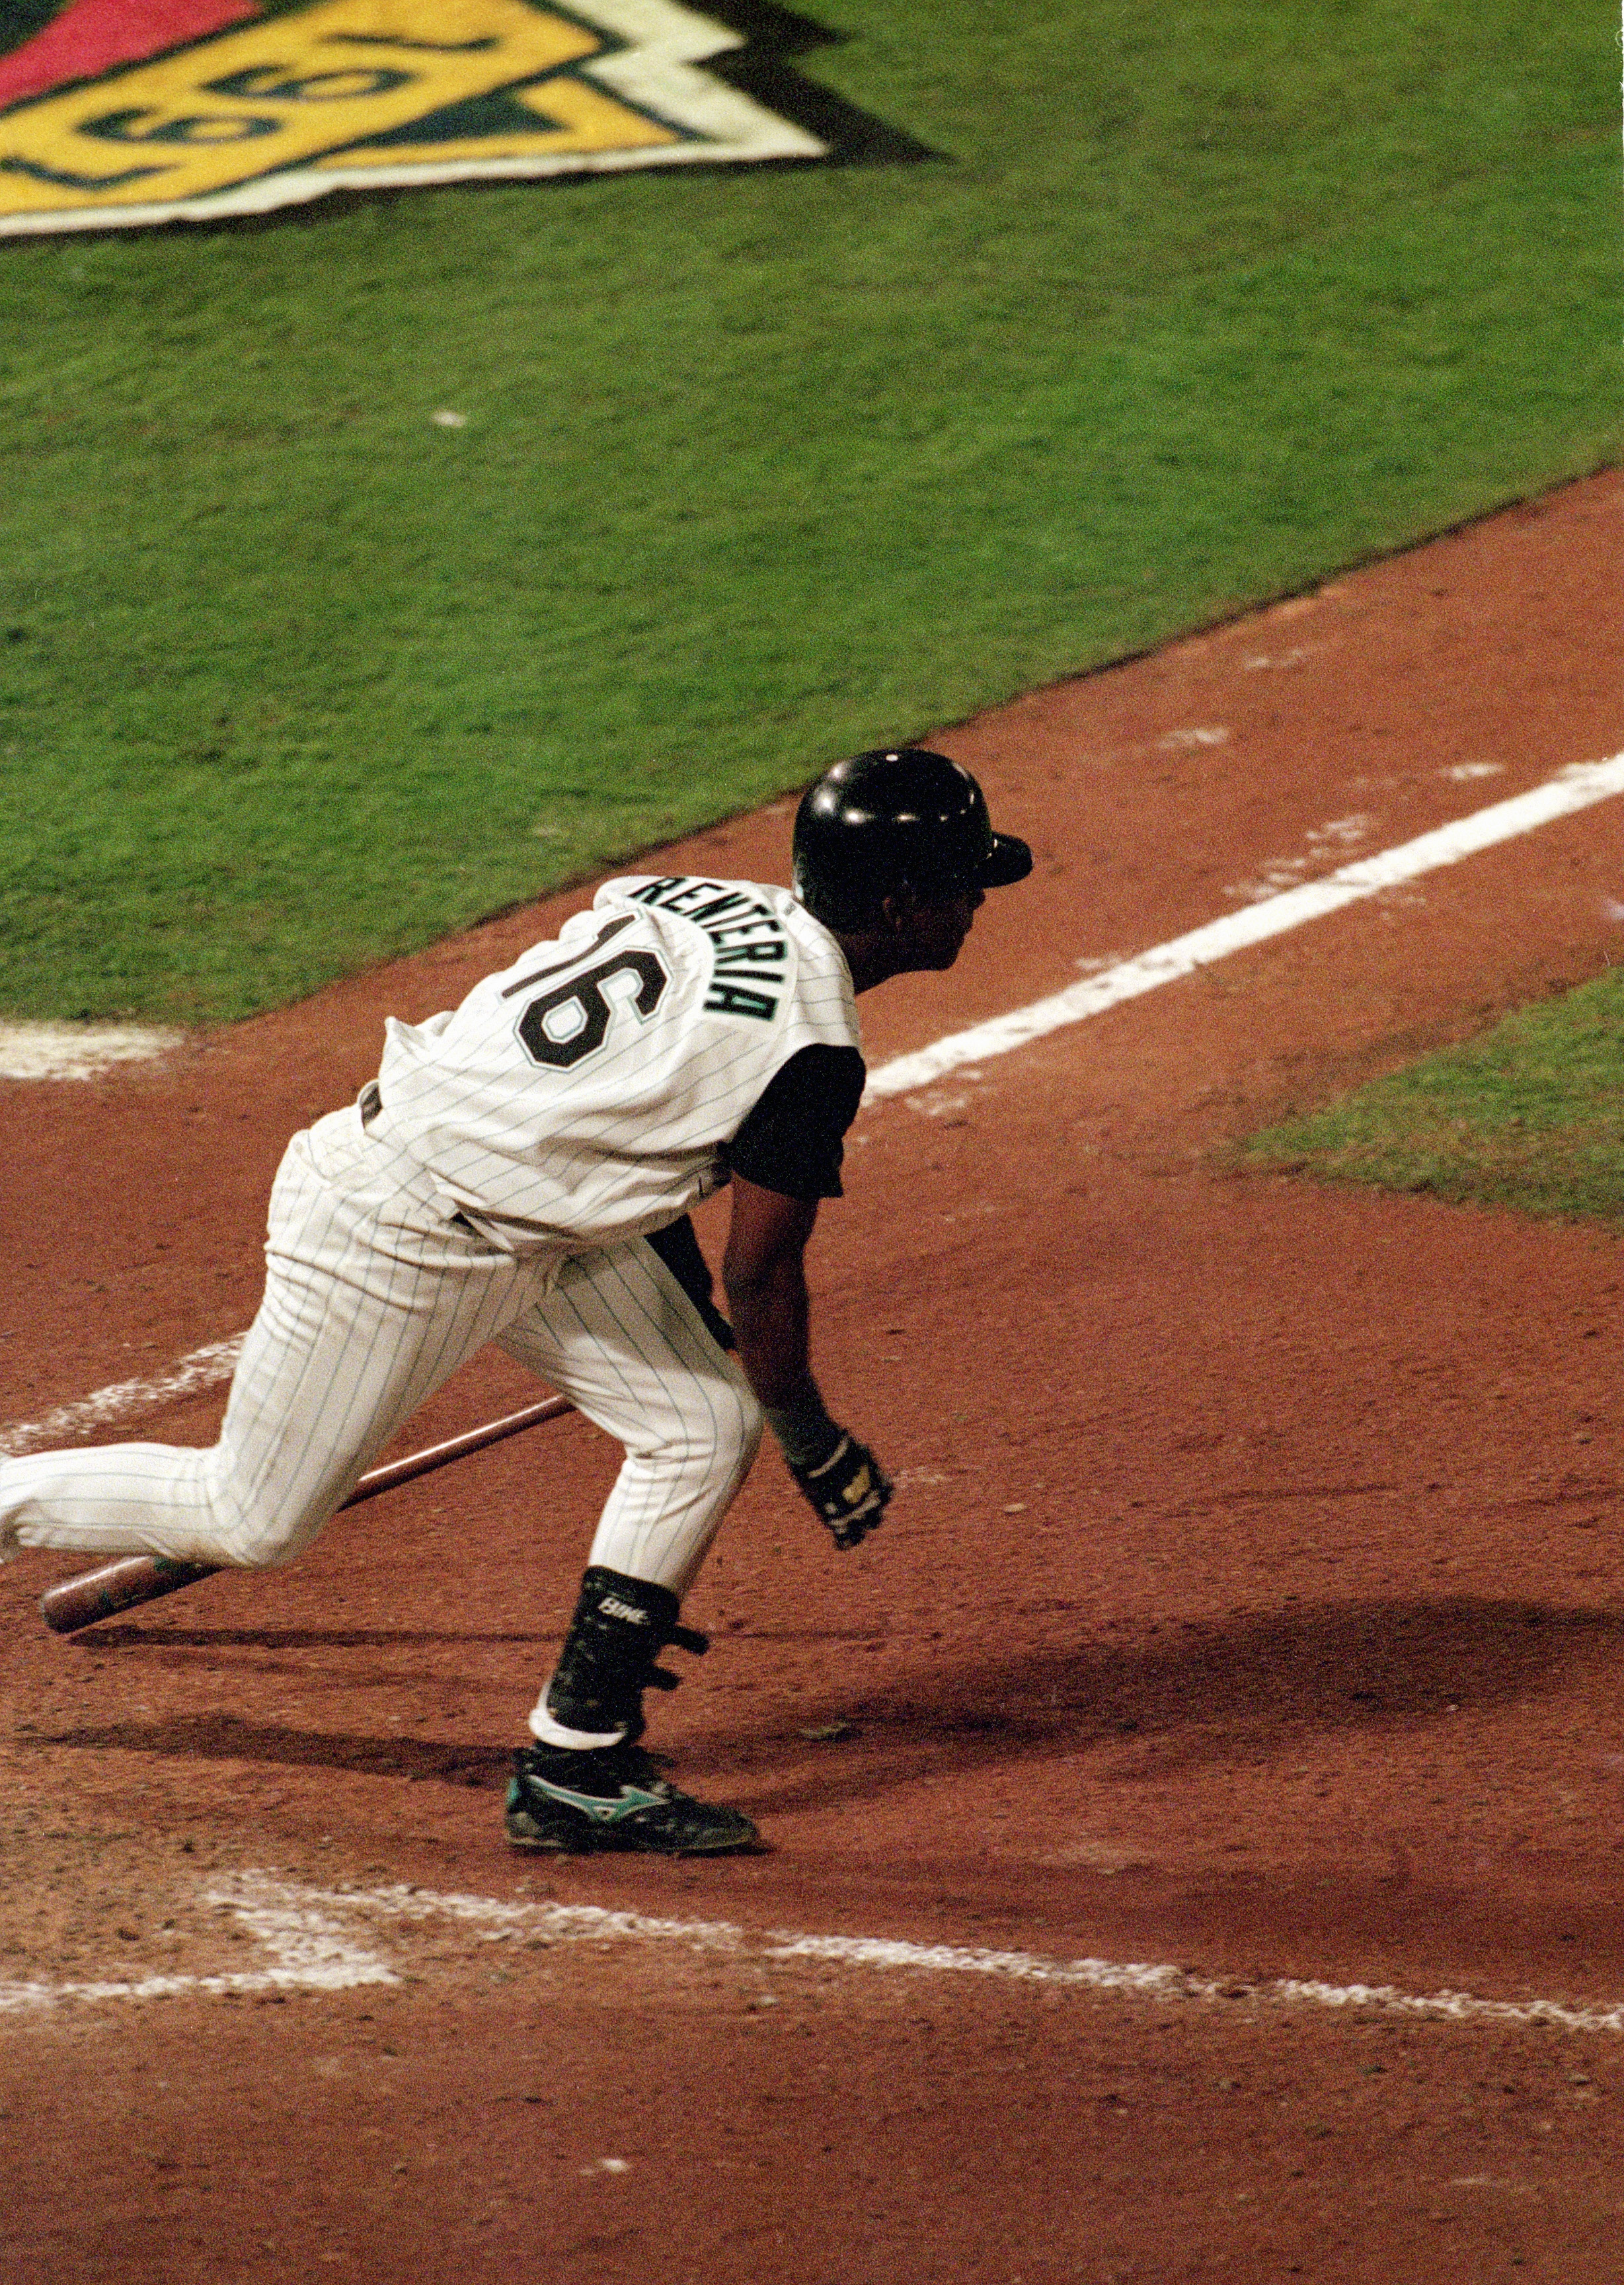 MIAMI - OCTOBER 26:  Edgar Renteria #16 of the Florida Marlins singles to center to drive in the game winning run during Game seven of the 1997 World Series against the Cleveland Indians at Pro Player Stadium on October 26, 1997 in Miami, Florida. The Mar